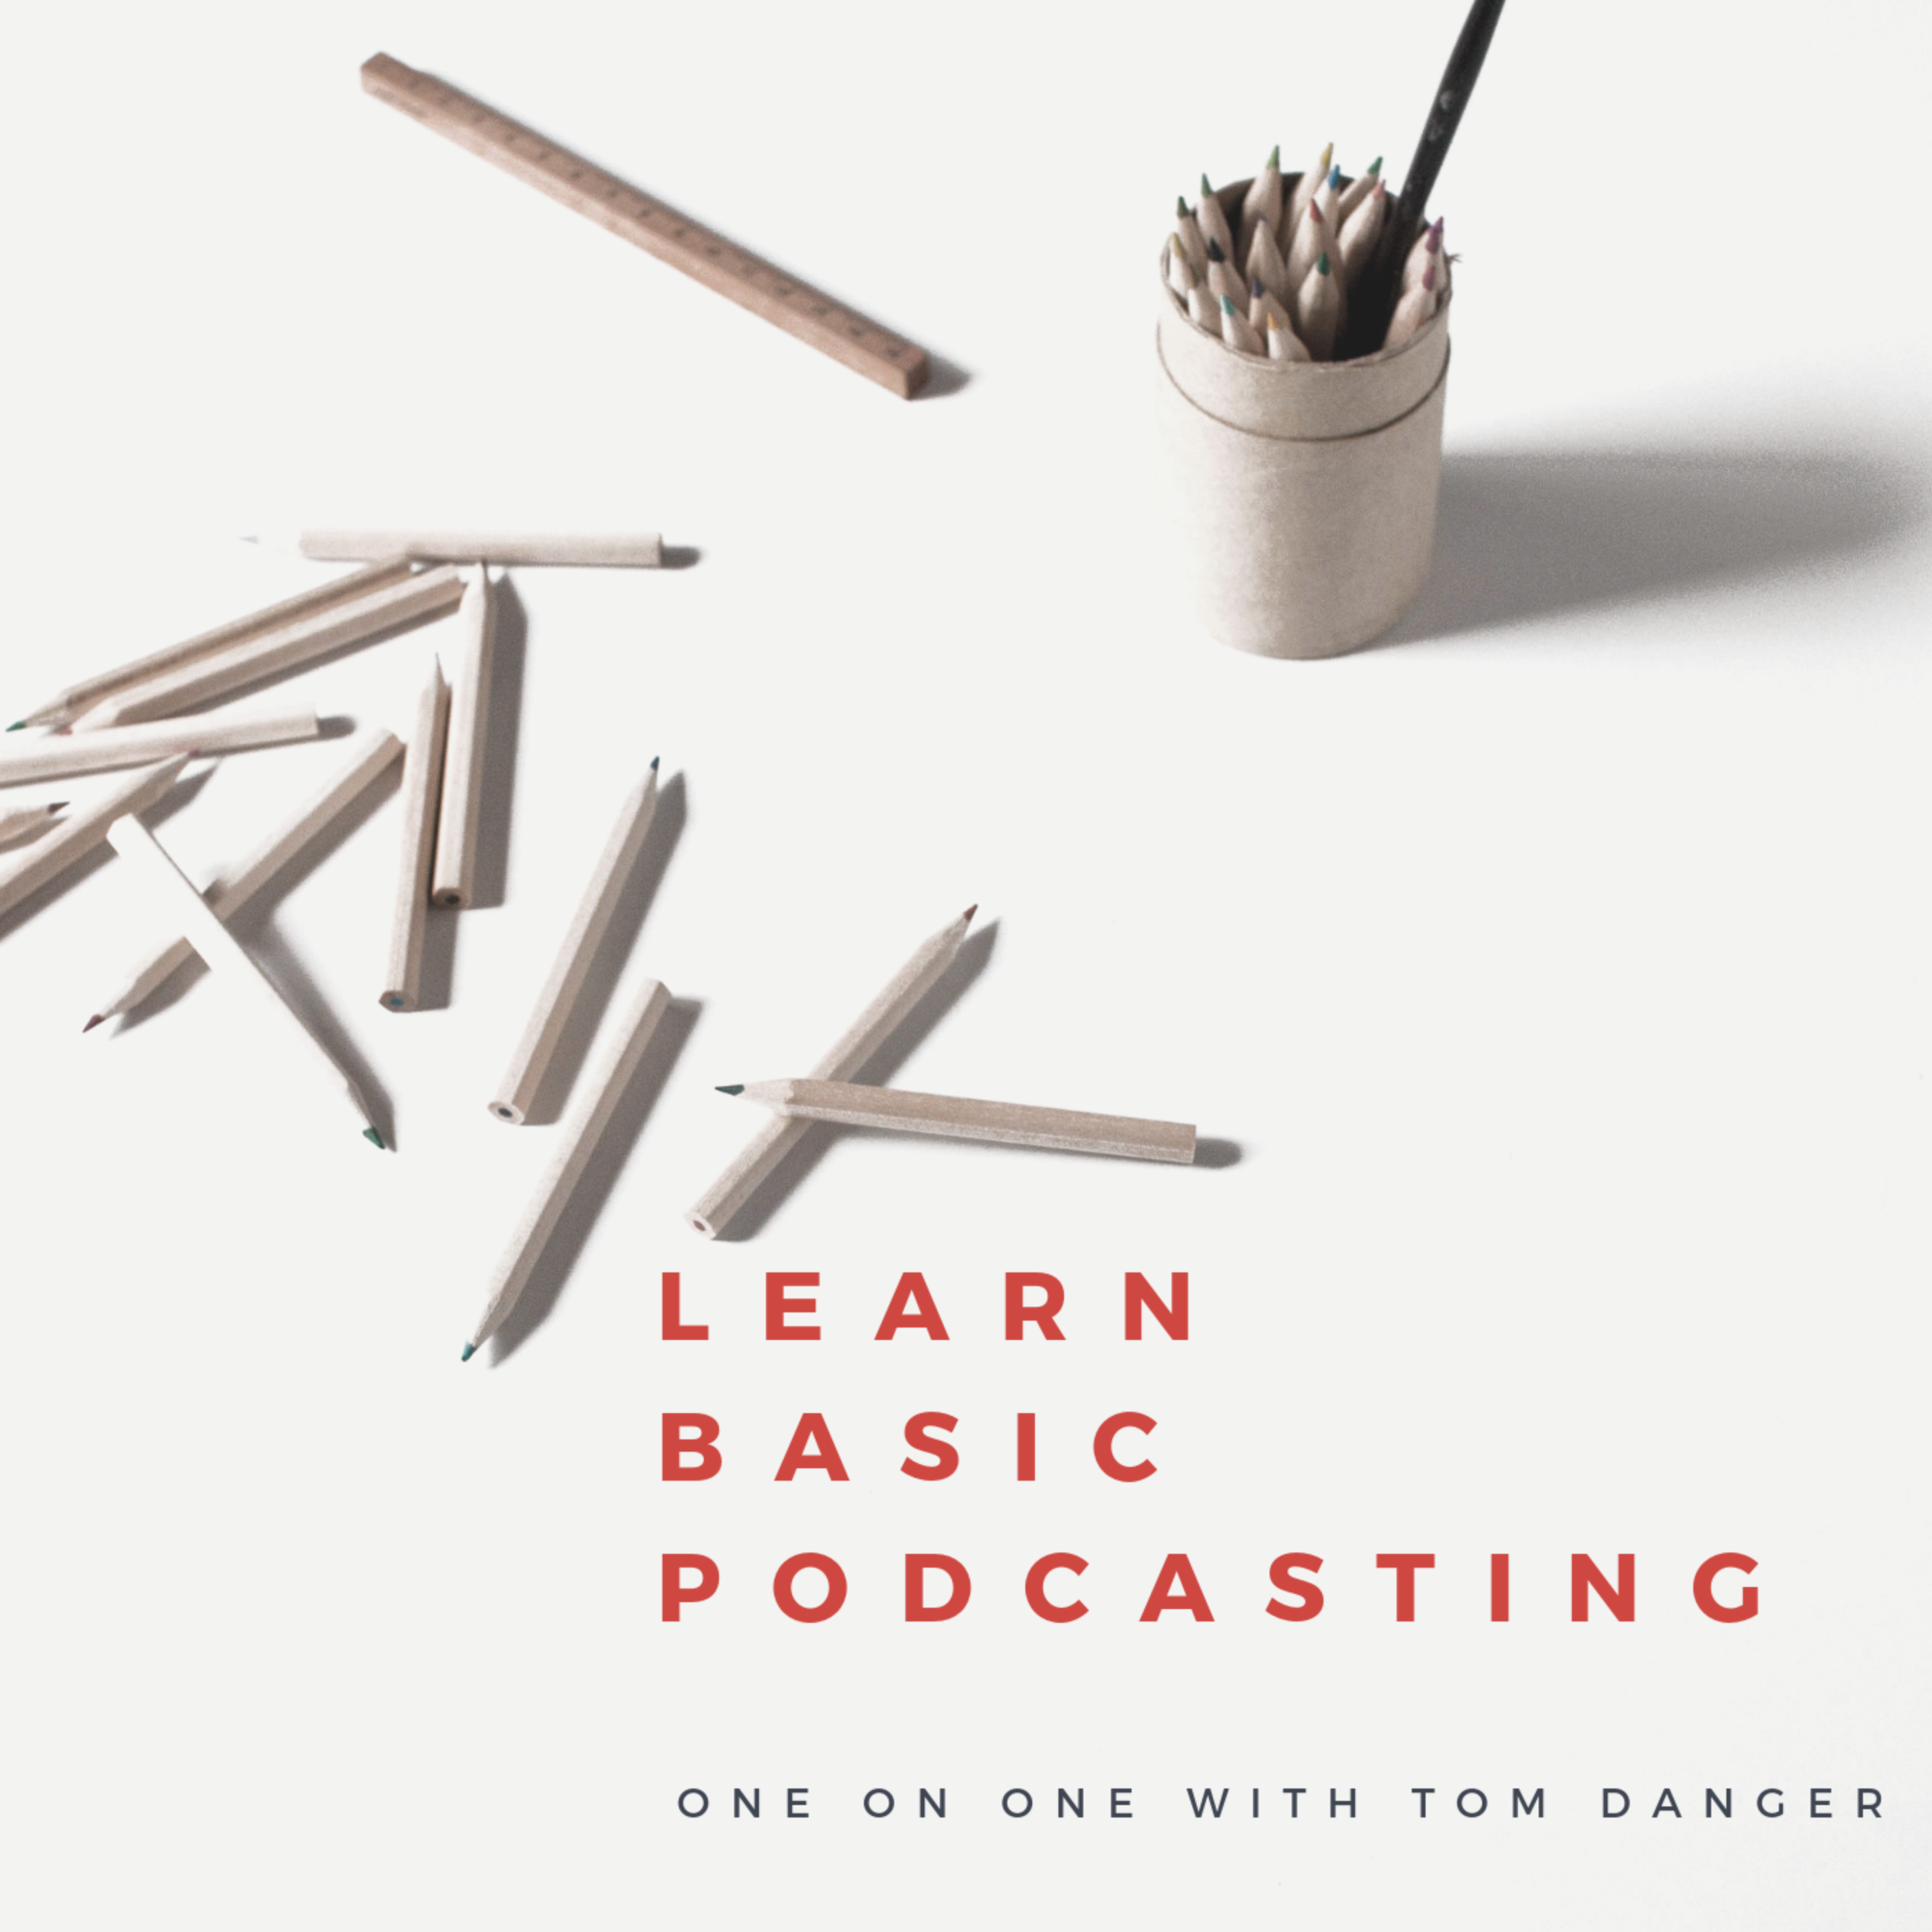 Learn Basic Podcasting - 2 hour session